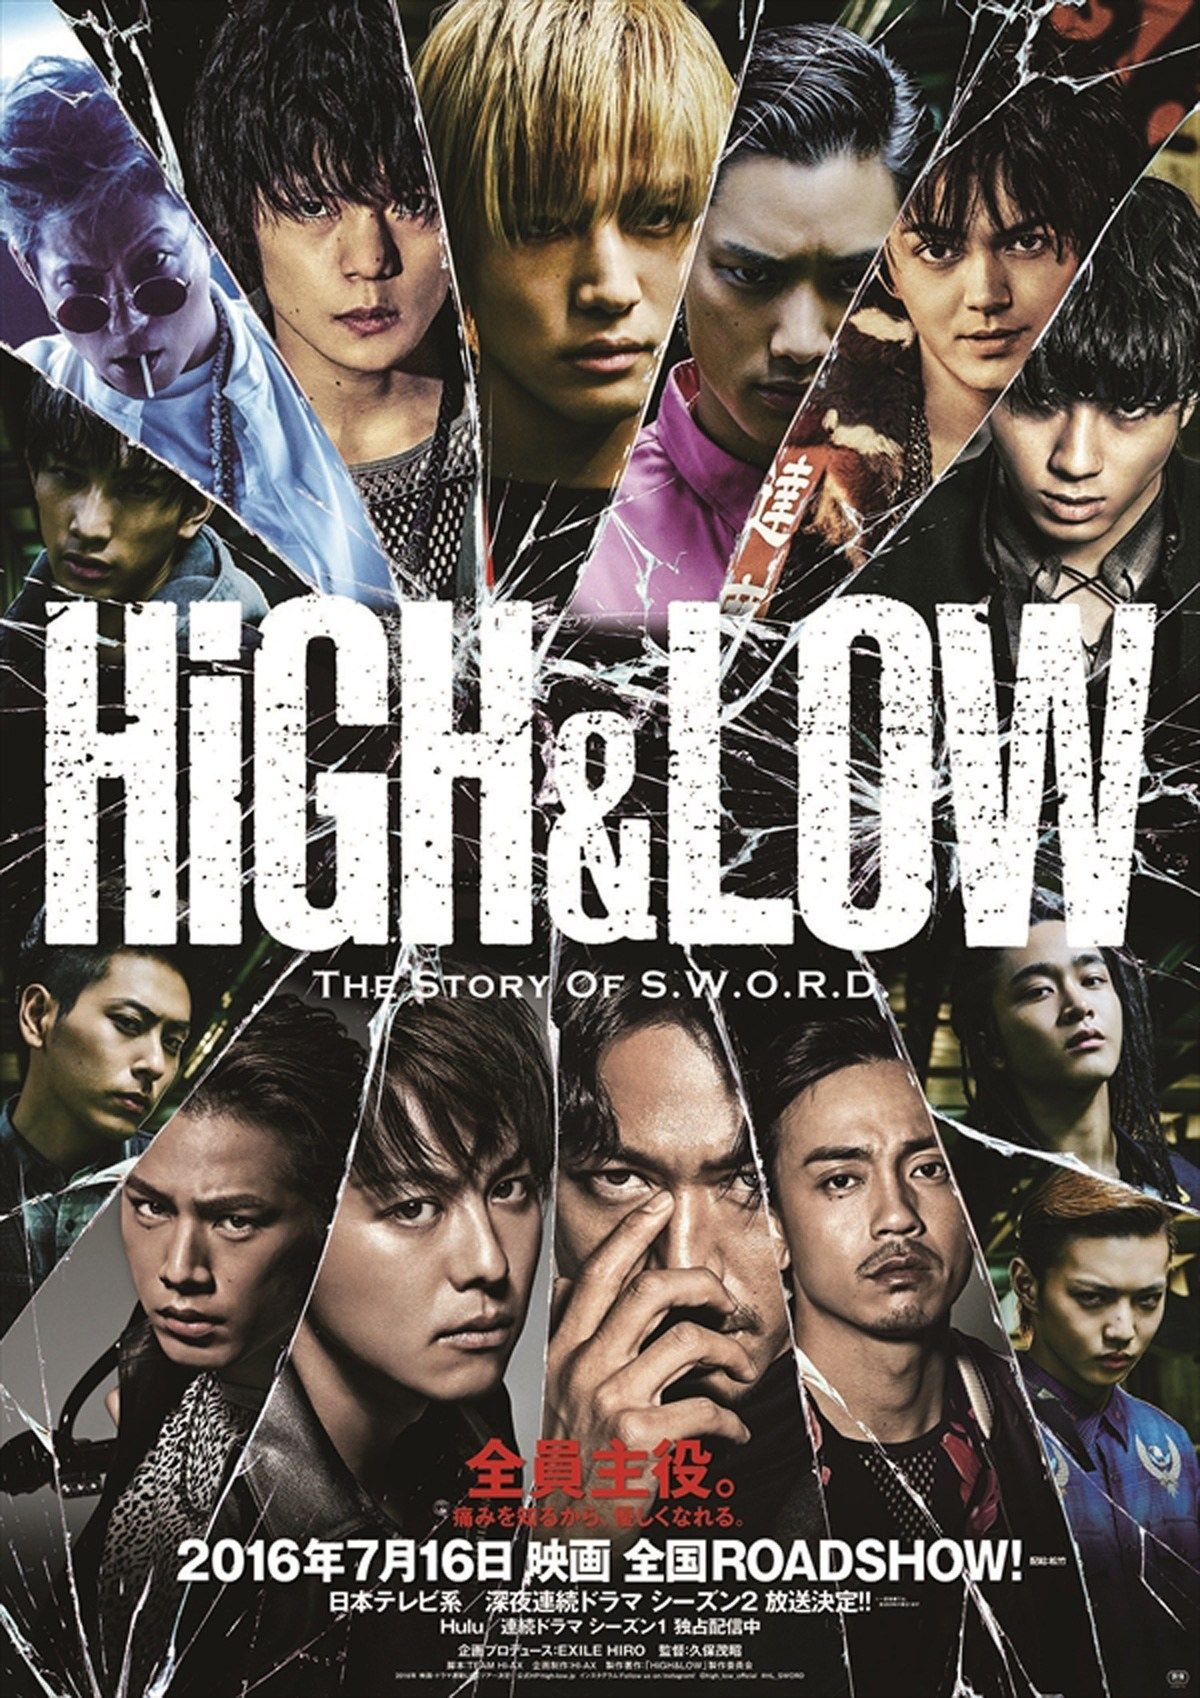 Download High And Low Season 2 Sub Indo Batch : download, season, batch, Story, Season, Japanese, Series, ハイアンド, Cute766